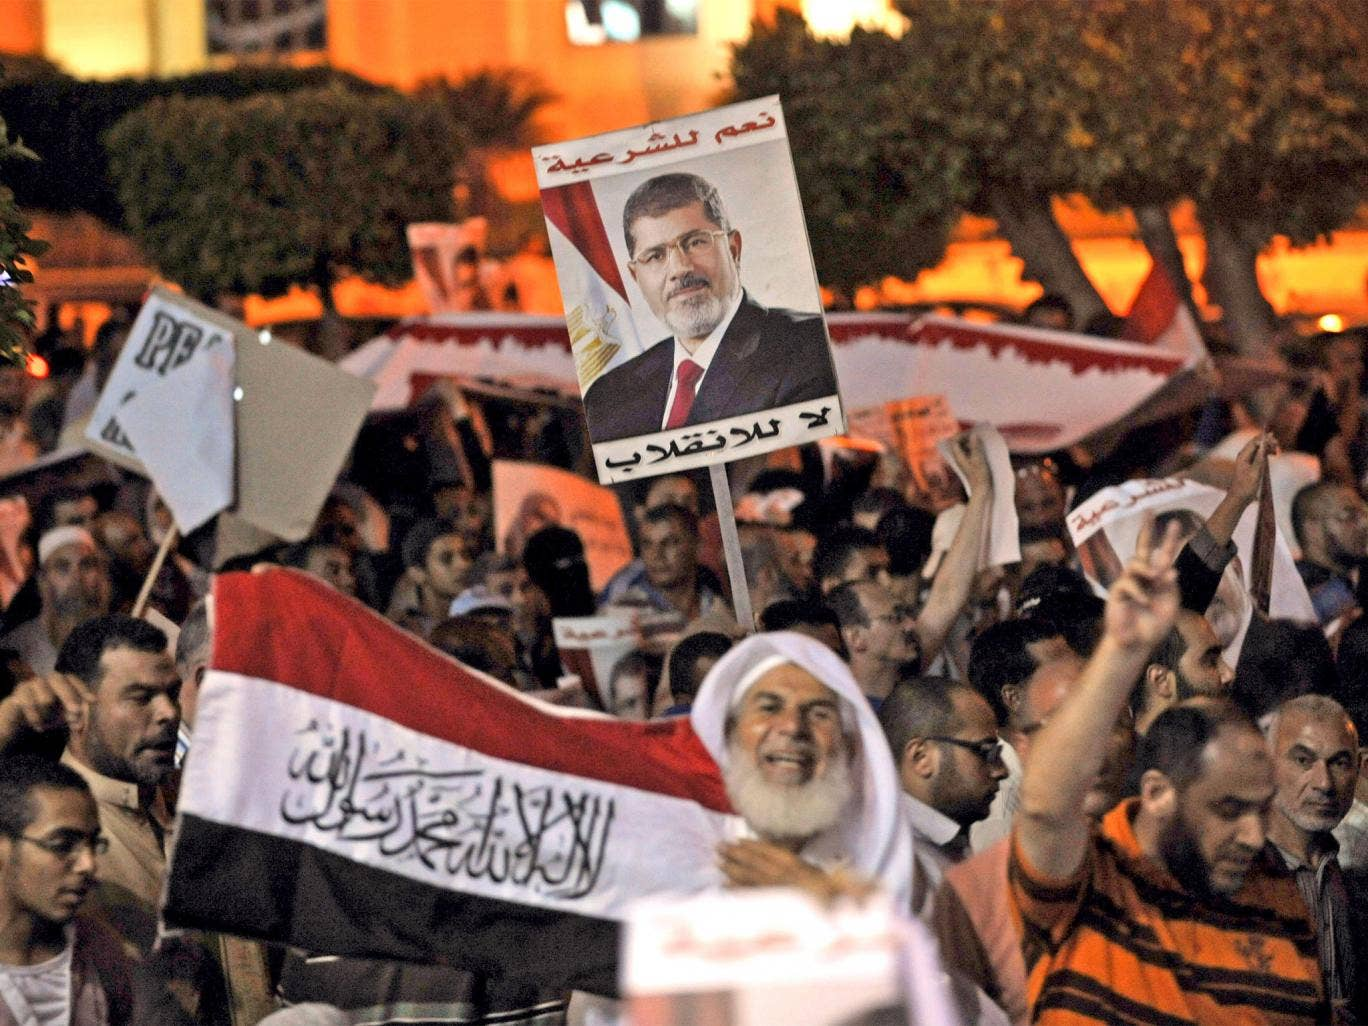 Egyptian supporters of Morsi protest in Cairo